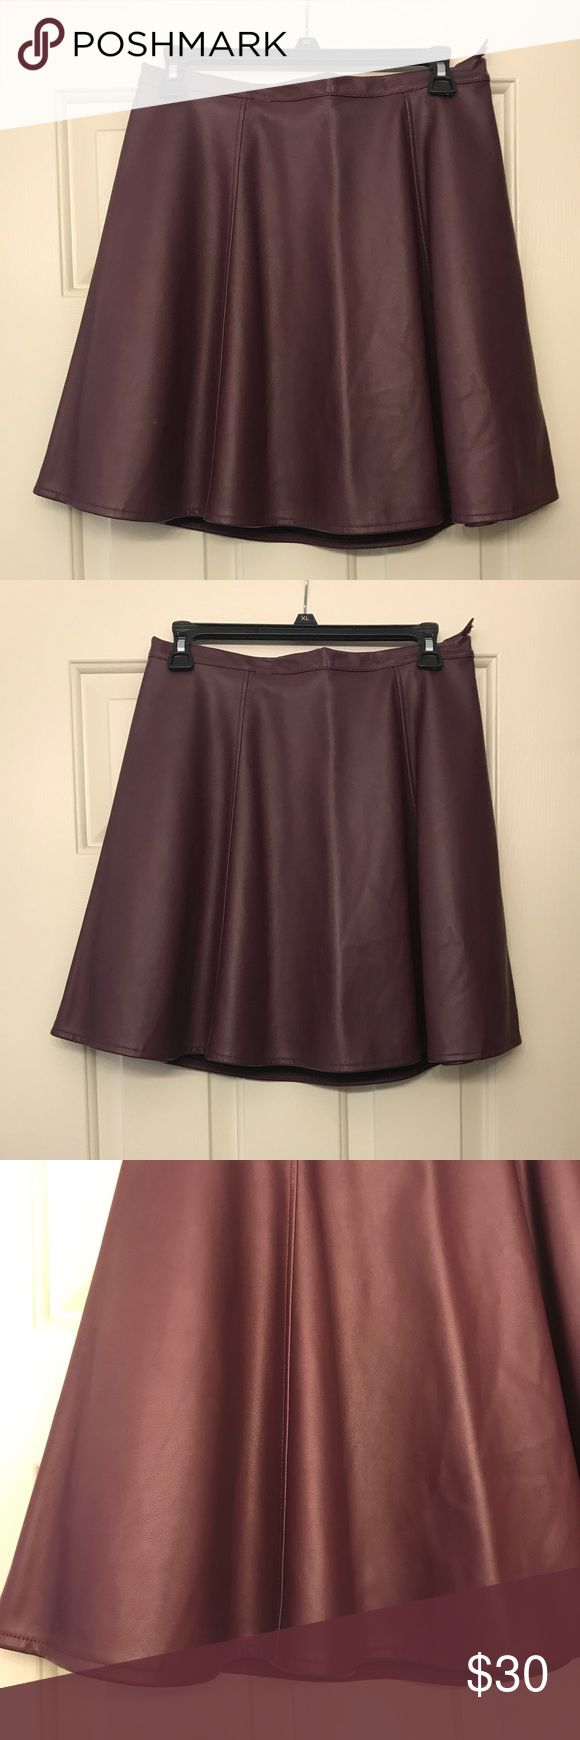 Plum faux leather skater skirt Super trendy Plum colored faux leather skater skirt. Secures with a zipper and a button on the side. Never worn! LC Lauren Conrad Skirts Circle & Skater